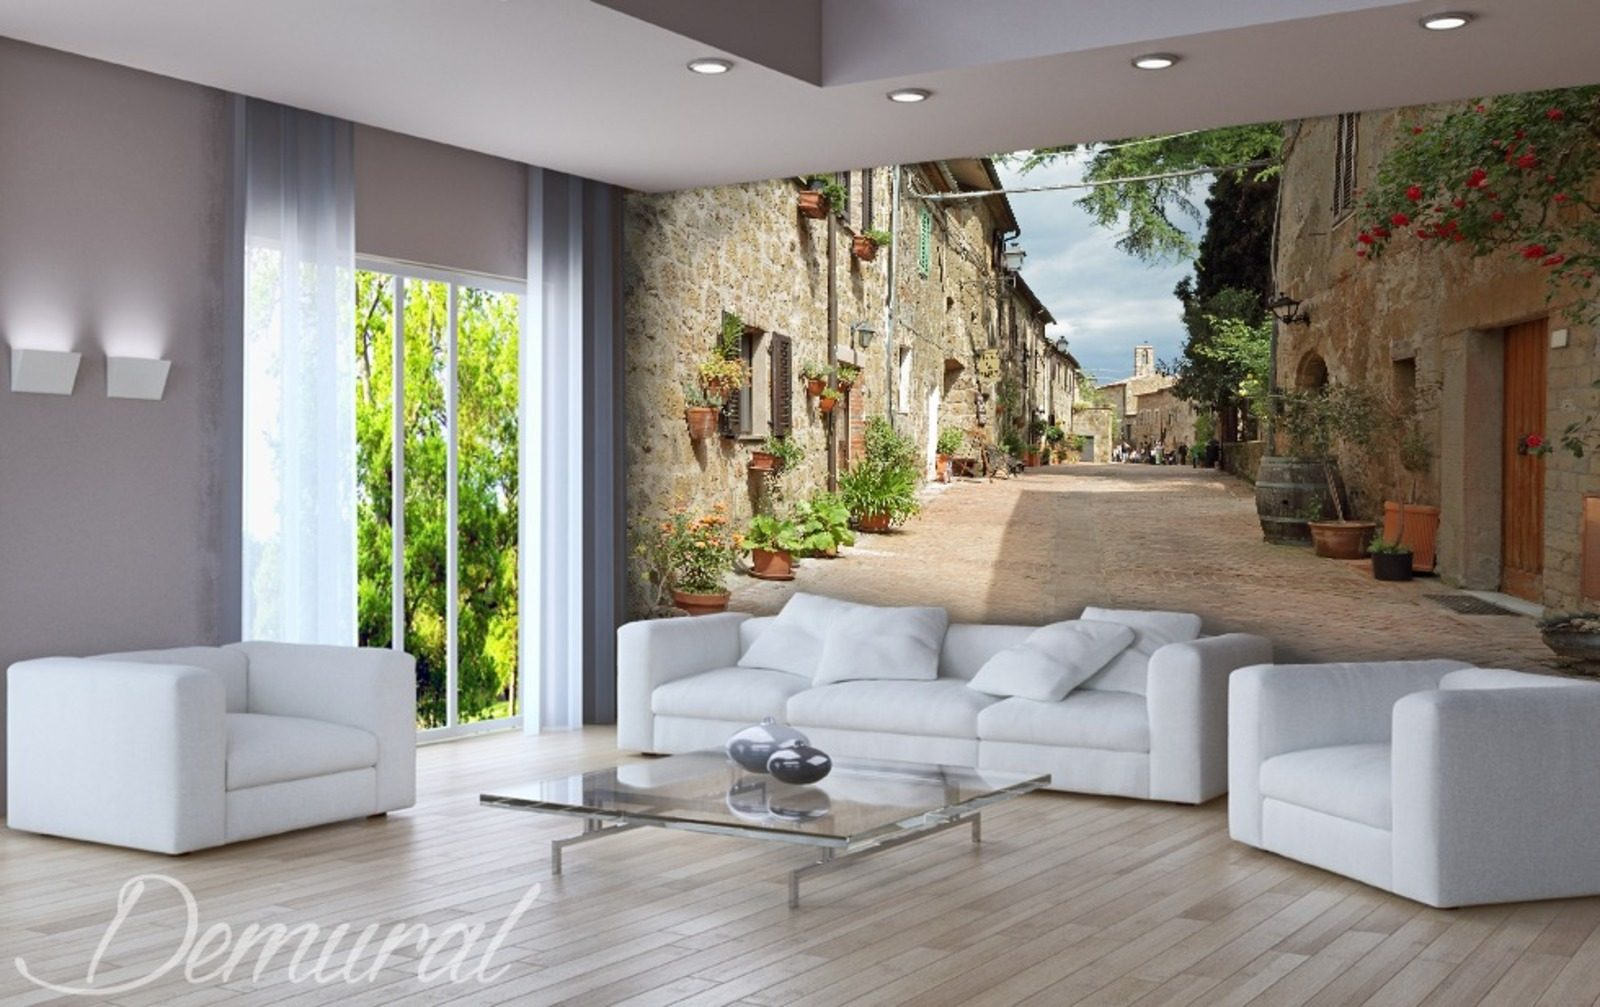 chill and out fototapeten gasse fototapeten demural. Black Bedroom Furniture Sets. Home Design Ideas